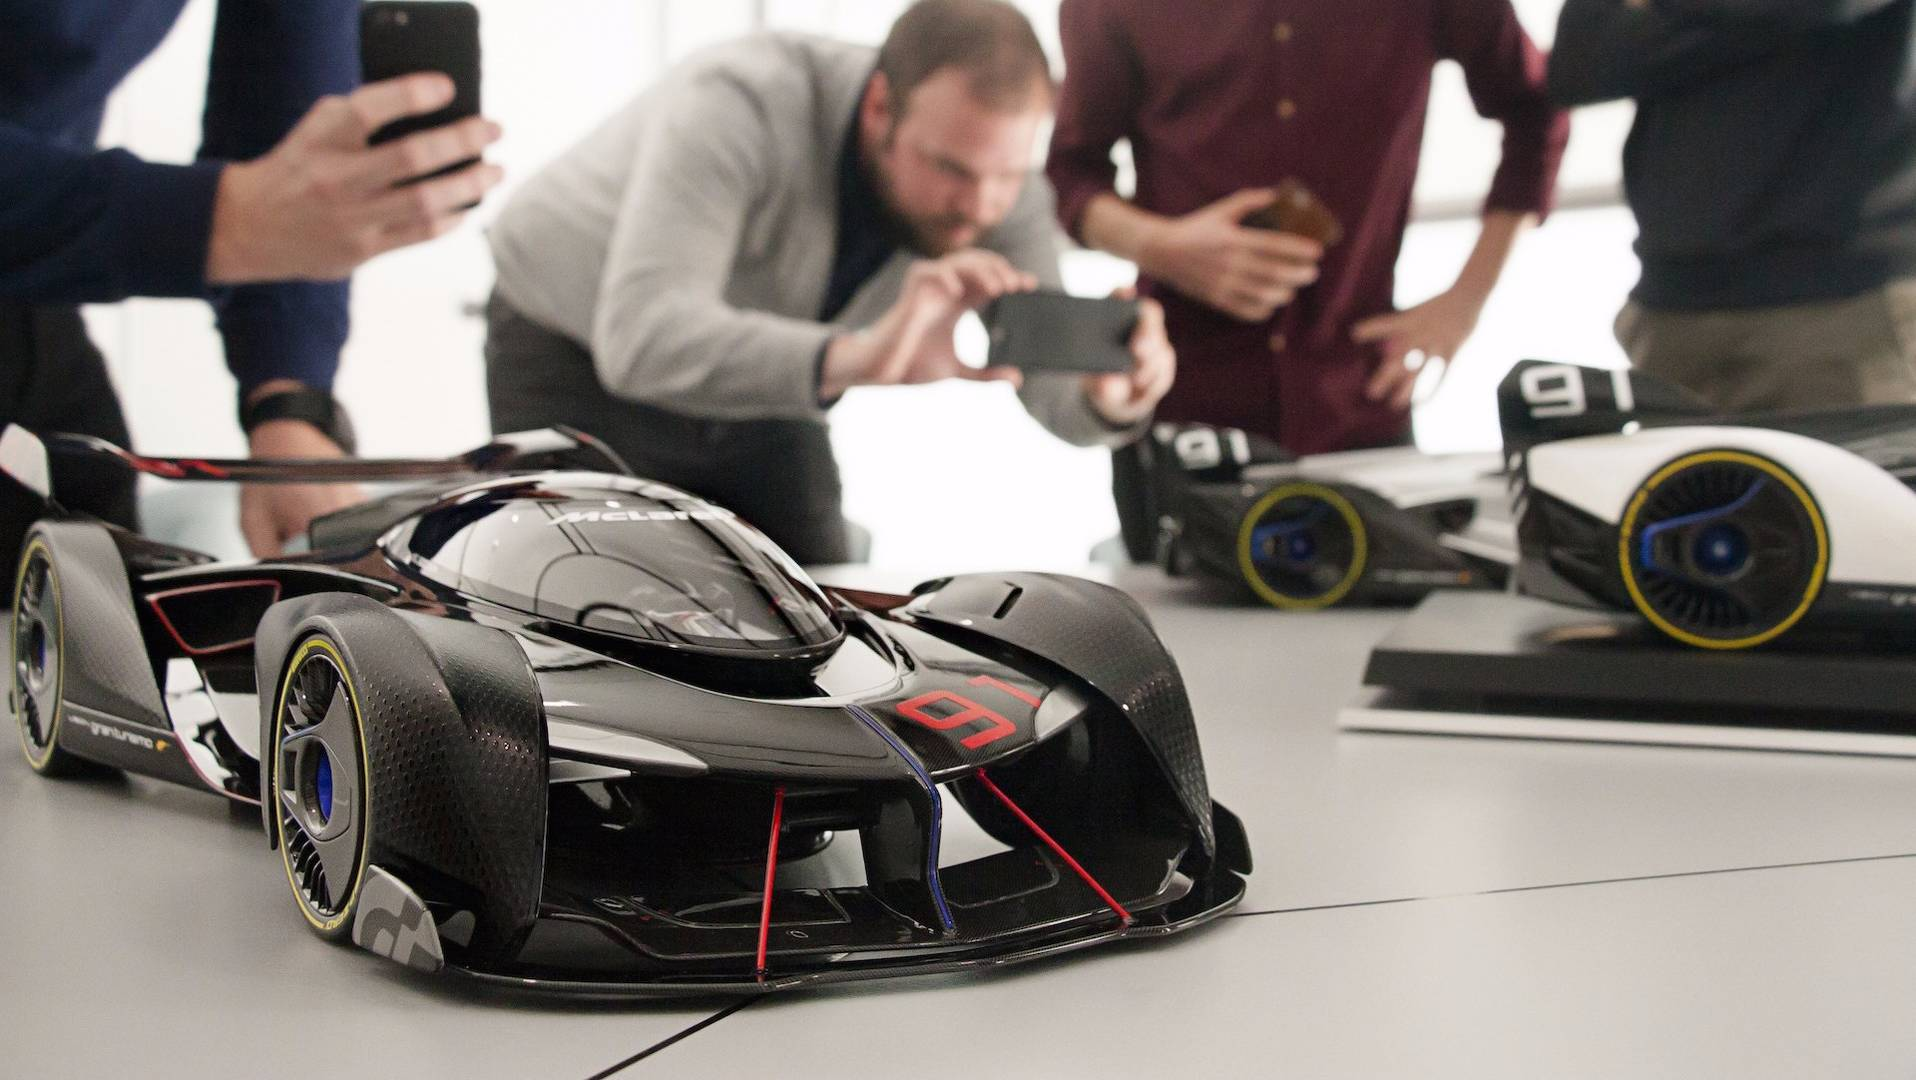 mclaren-ultimate-vision-gt-scale-model (27)